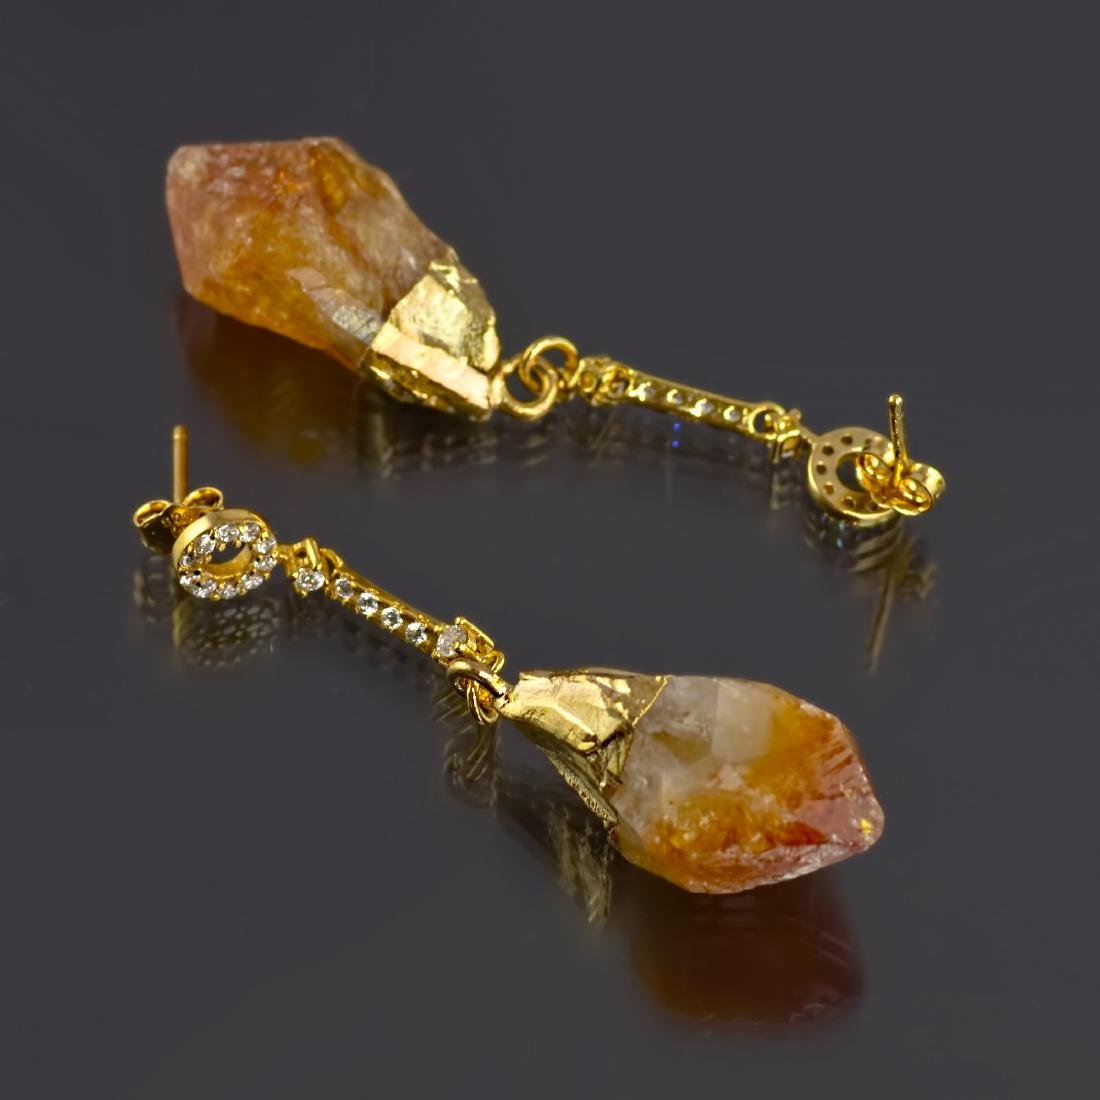 Sparkling Chain Earrings with Raw Citrine Gemstones - 4